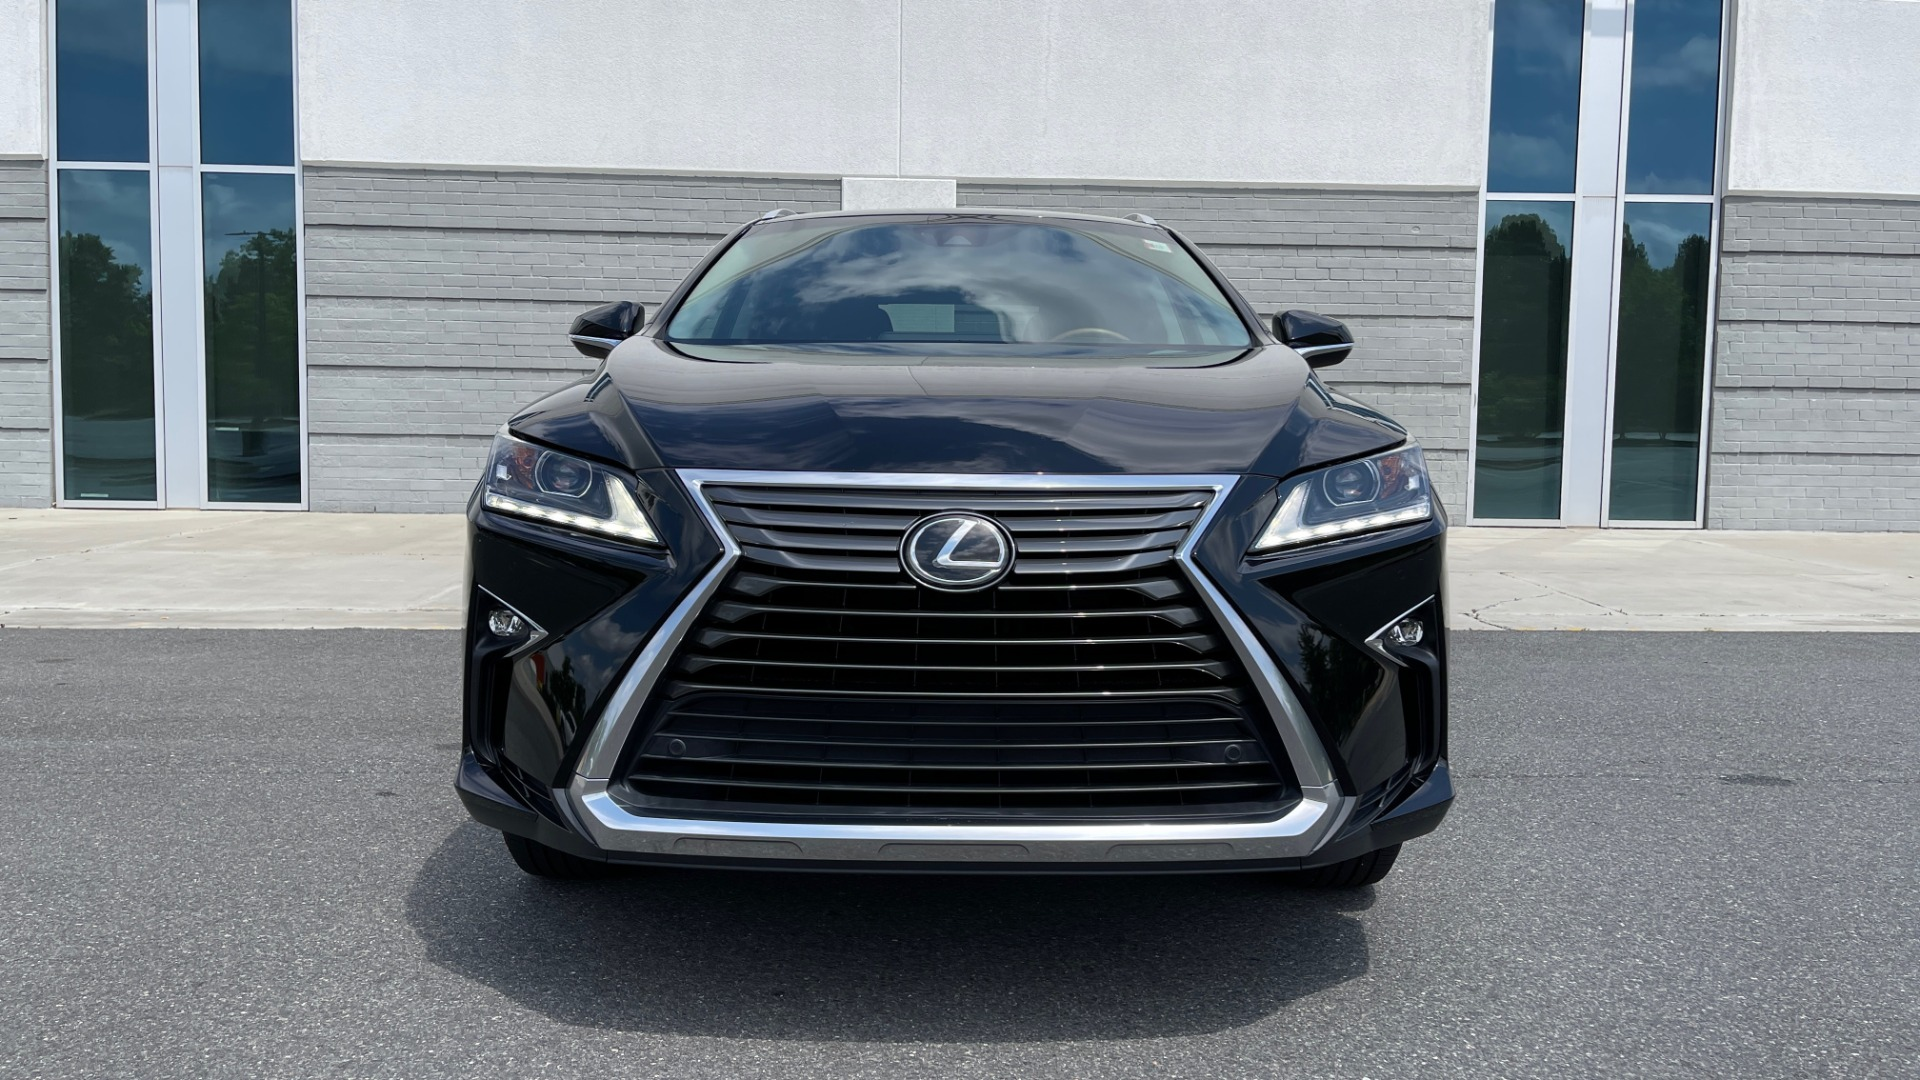 Used 2016 Lexus RX 350 PREMIUM / NAV / SUNROOF / BSM / PARK ASST / REARVIEW for sale $29,495 at Formula Imports in Charlotte NC 28227 11